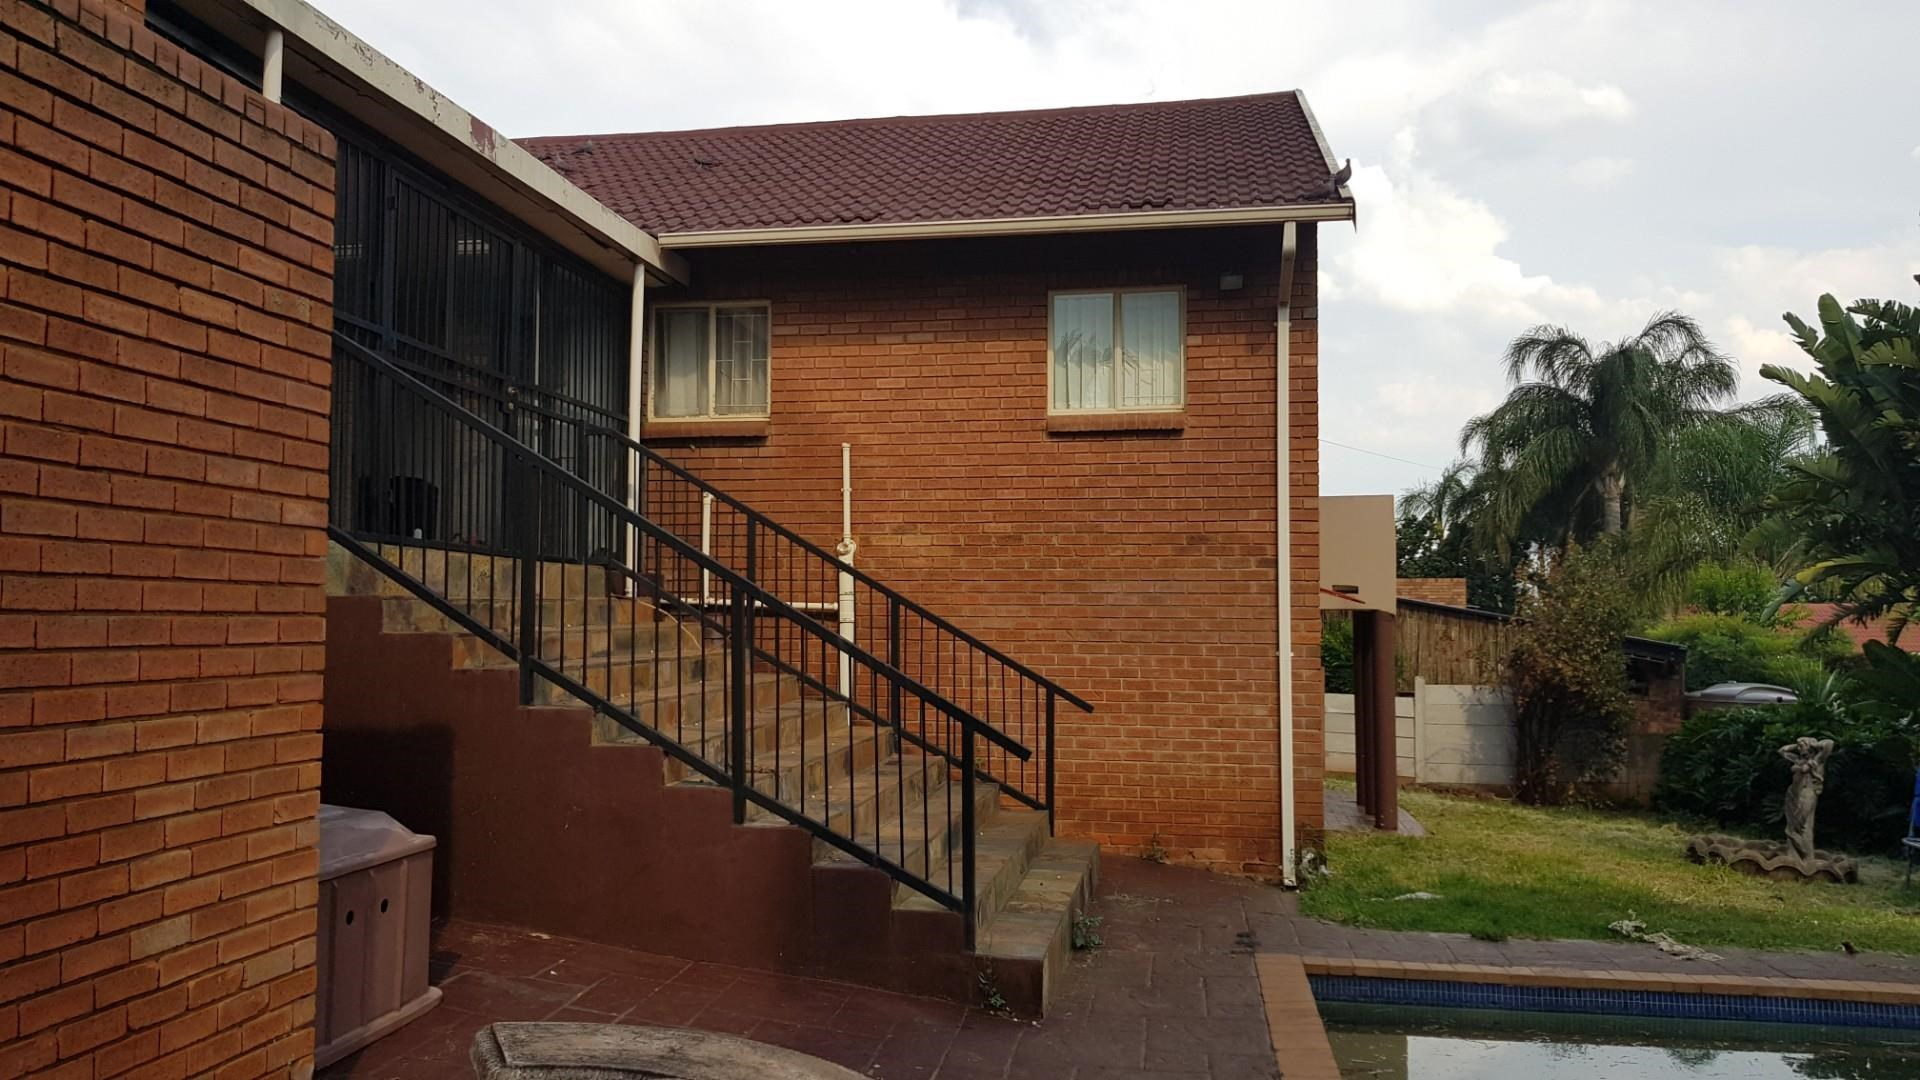 4 Bedroom House for Sale in Suiderberg